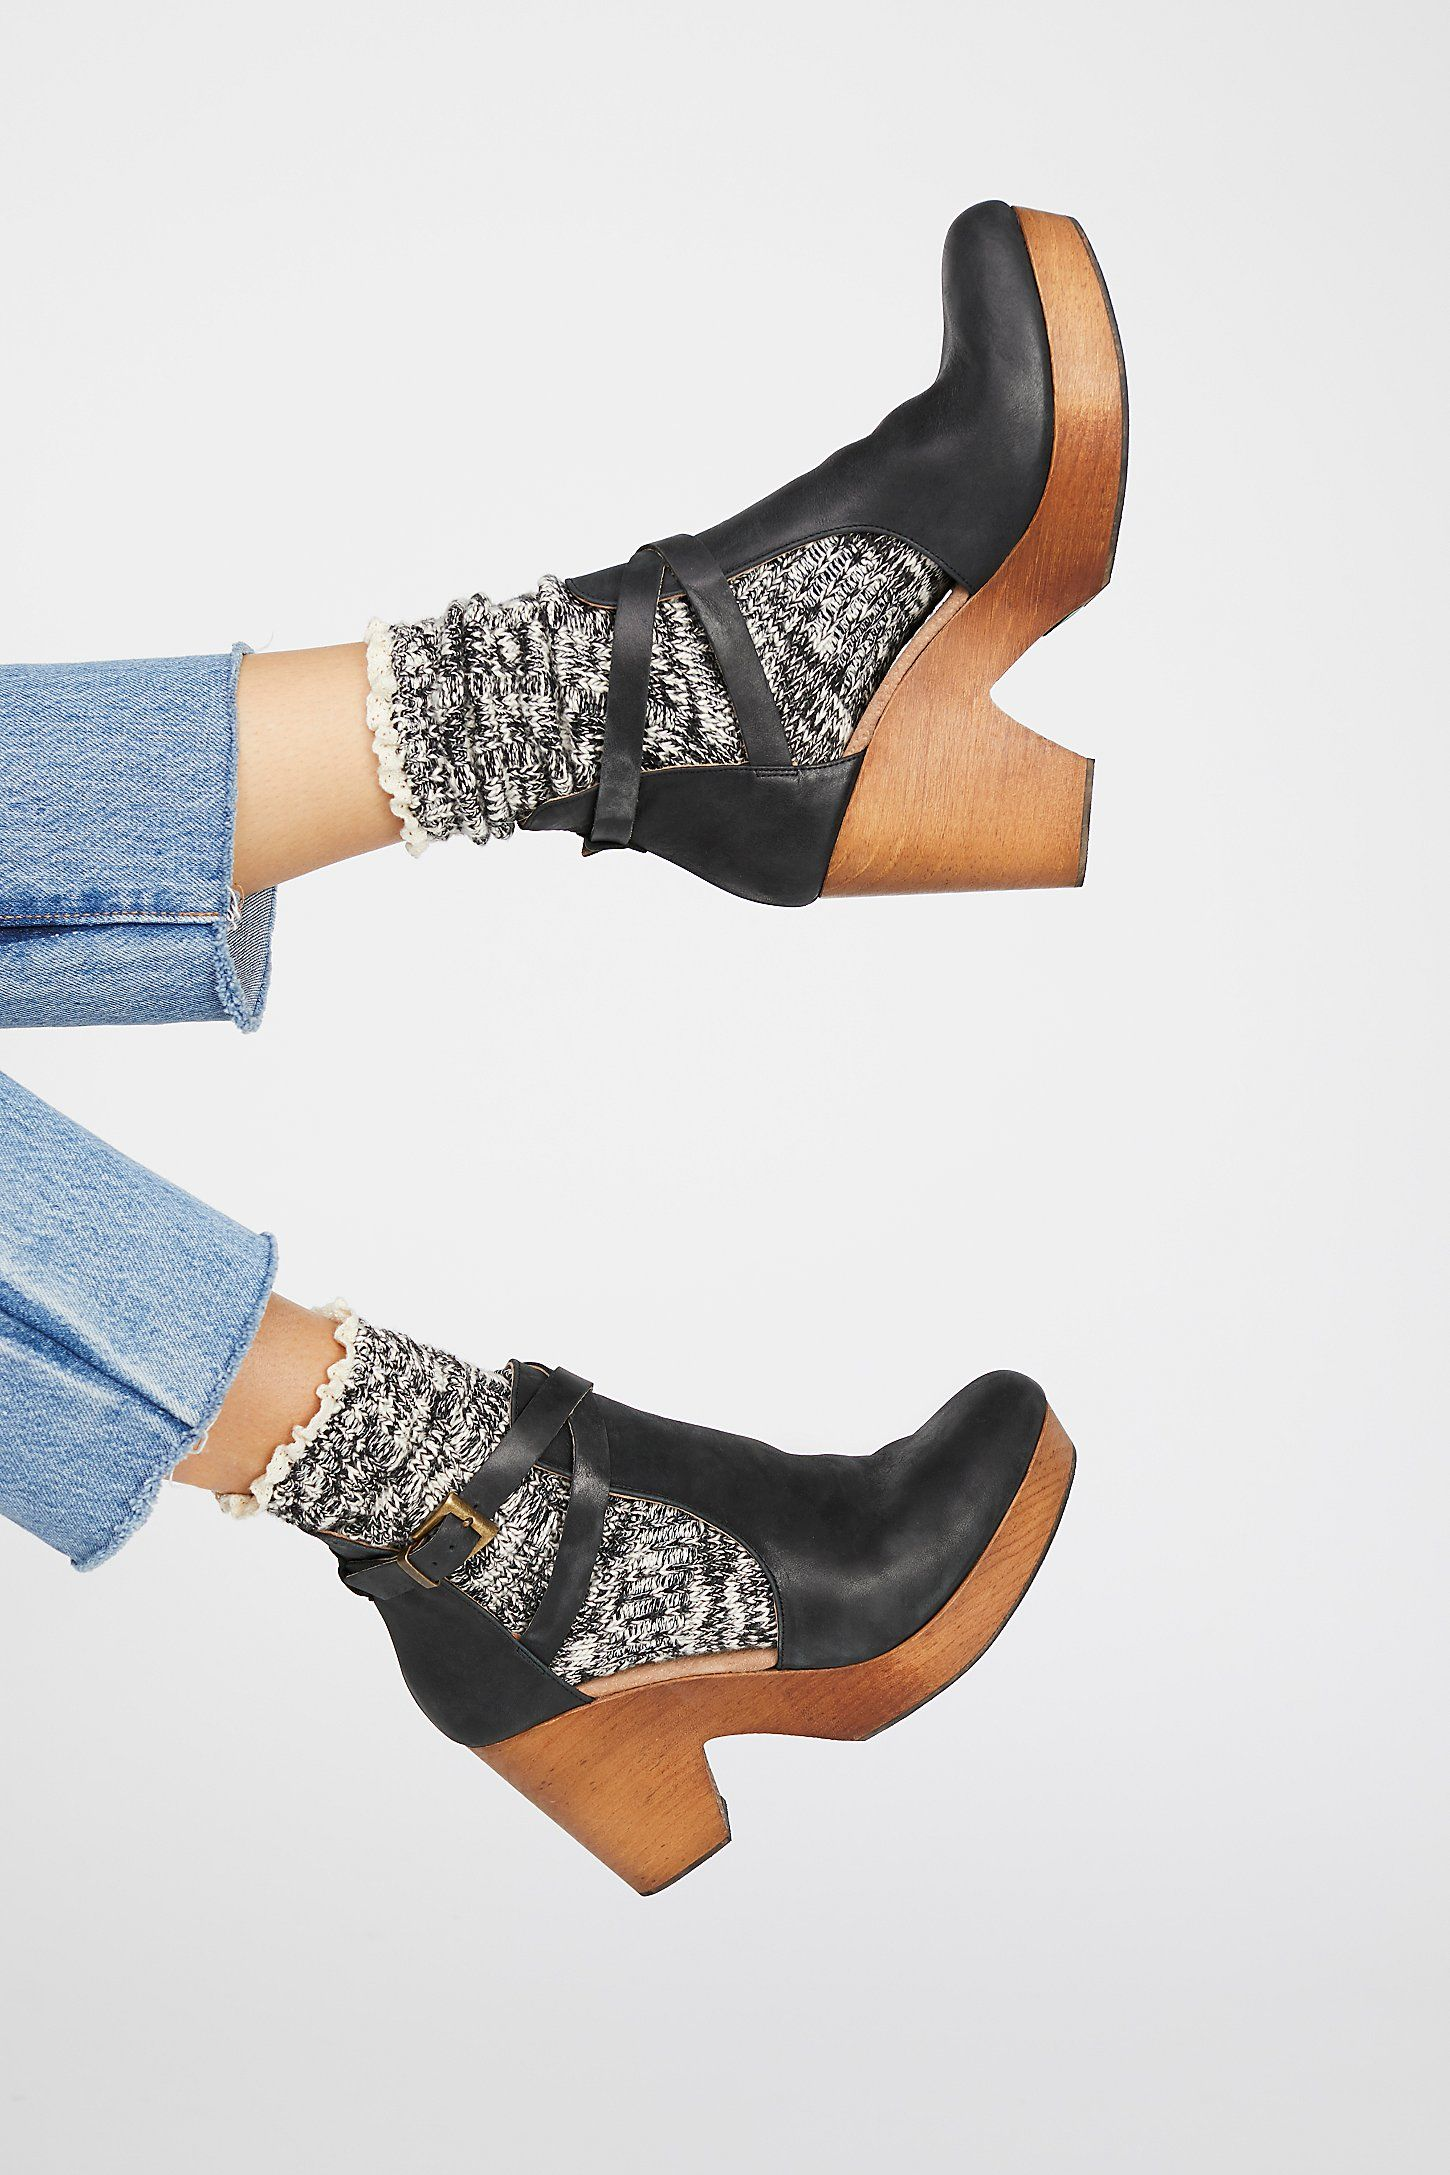 441bb2ac5f Shop our Cedar Clog at Free People.com. Share style pics with FP Me